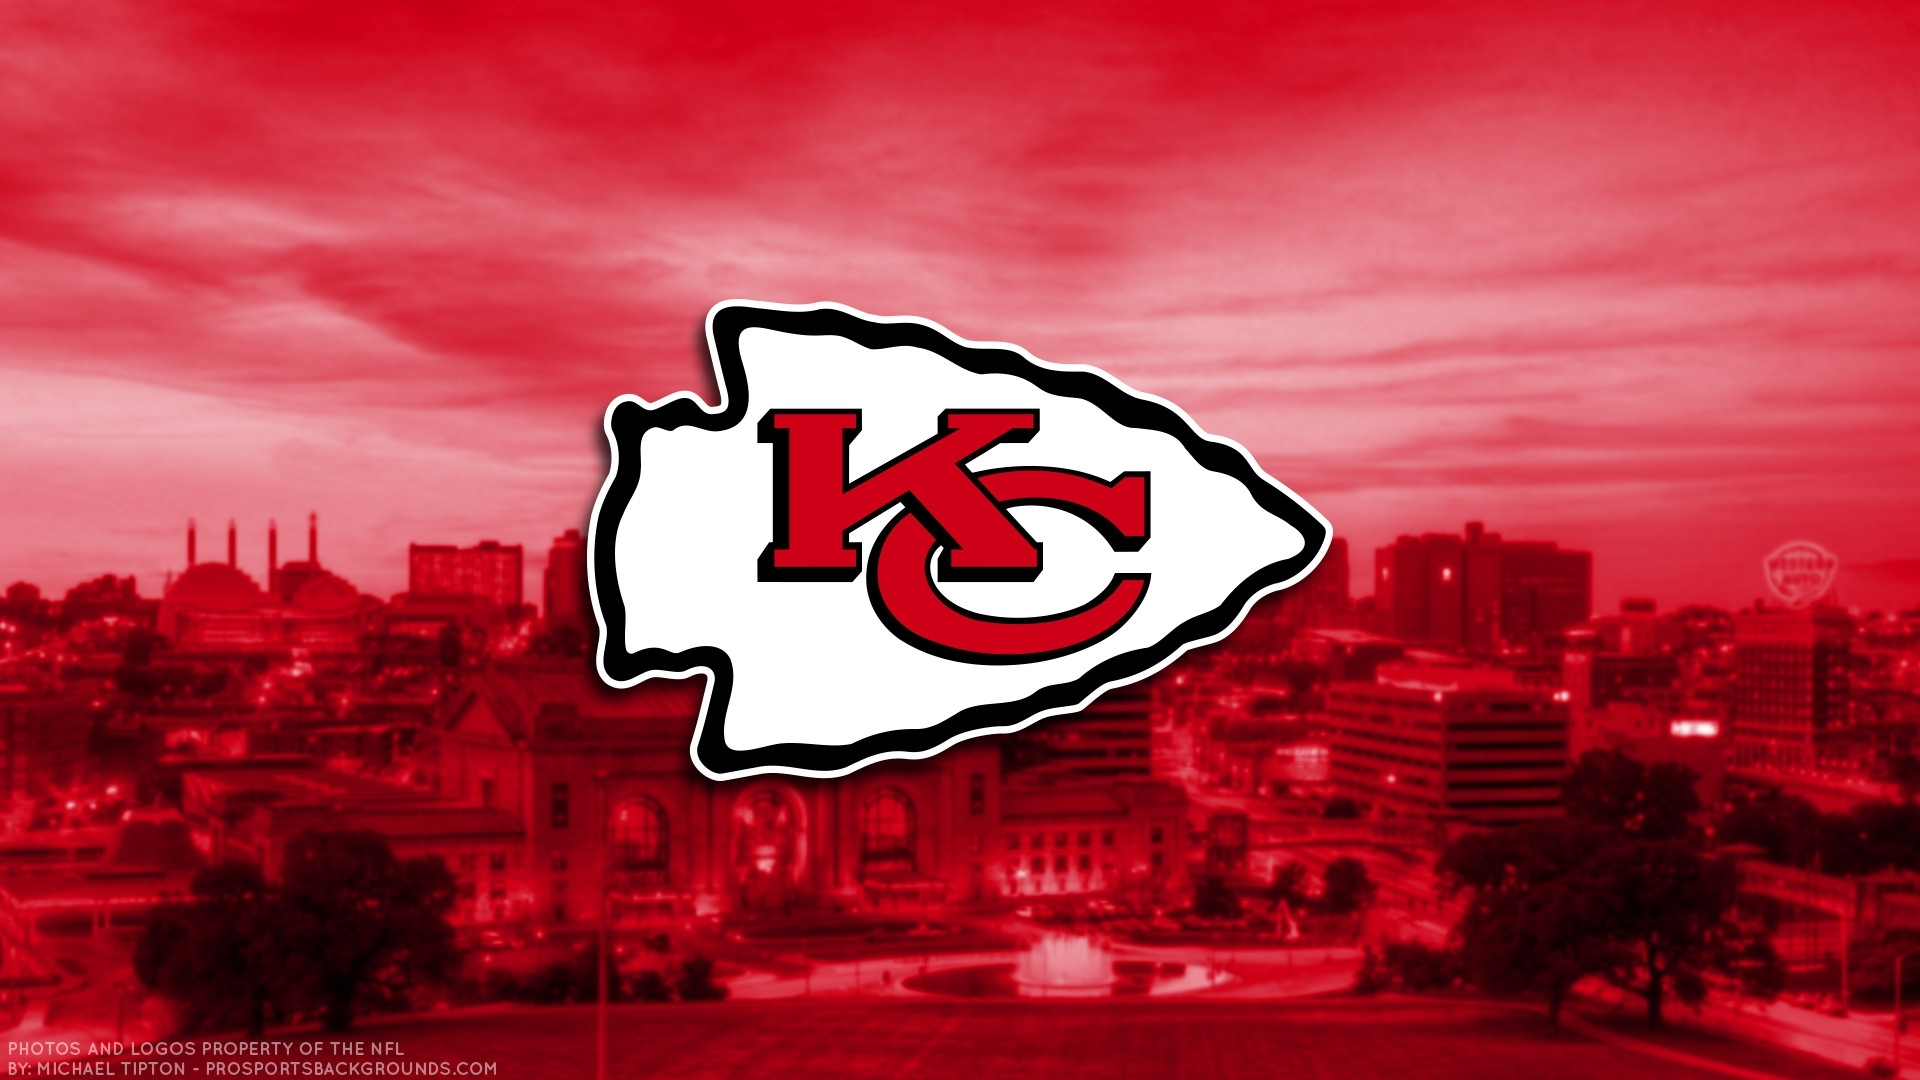 10 Top Kansas City Chiefs Hd Wallpaper FULL HD 1920×1080 For PC Background 2021